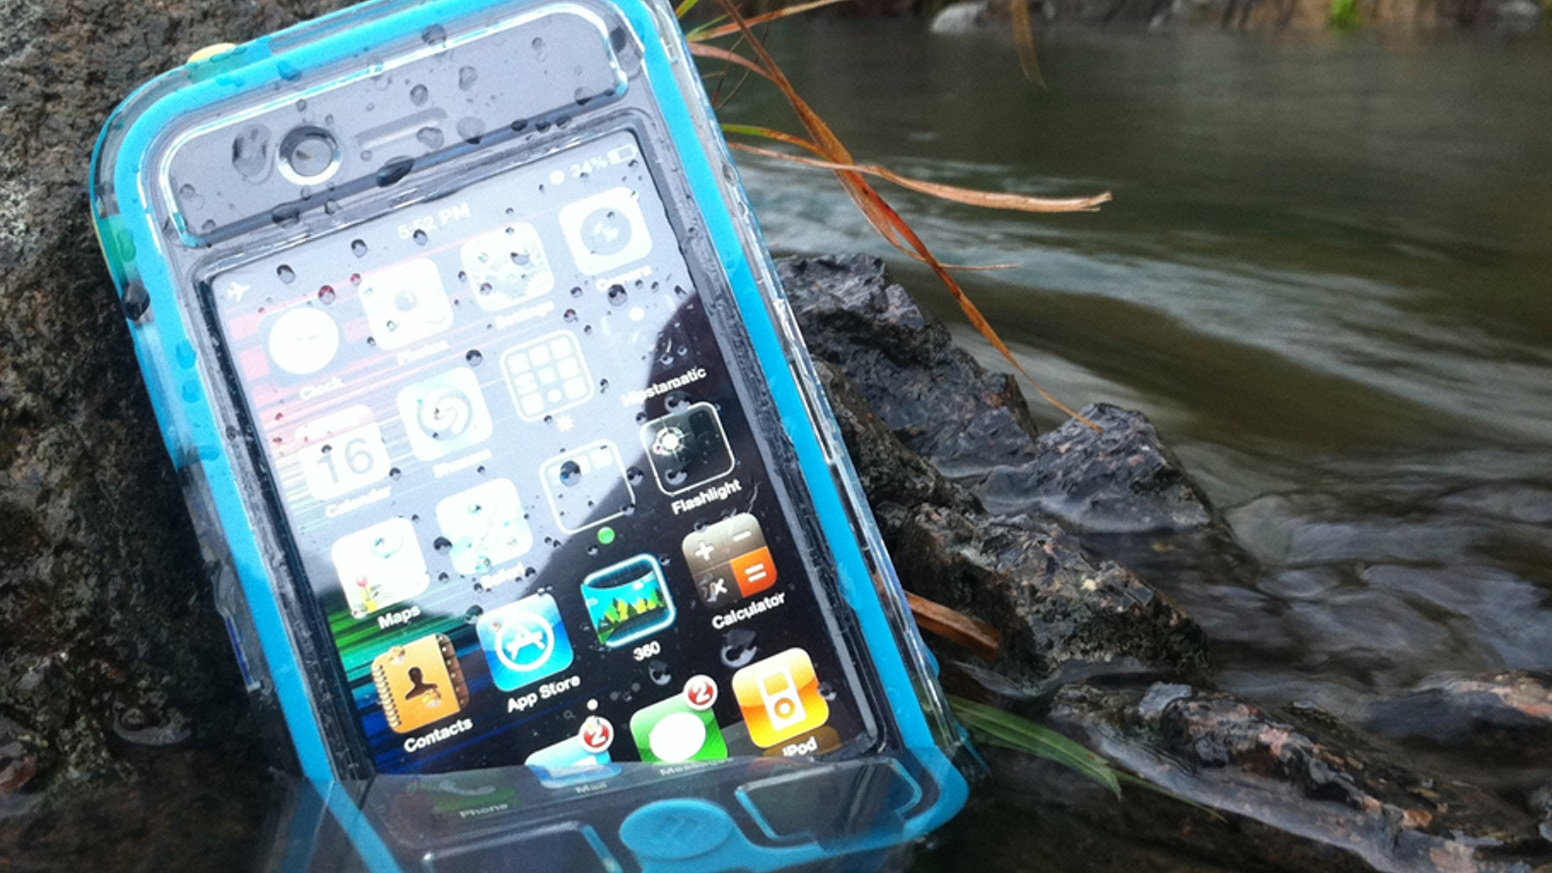 EscapeCapsule is a waterproof case that protects your iPhone4 from water, rain, snow, sand, impacts & anything else you can throw at it